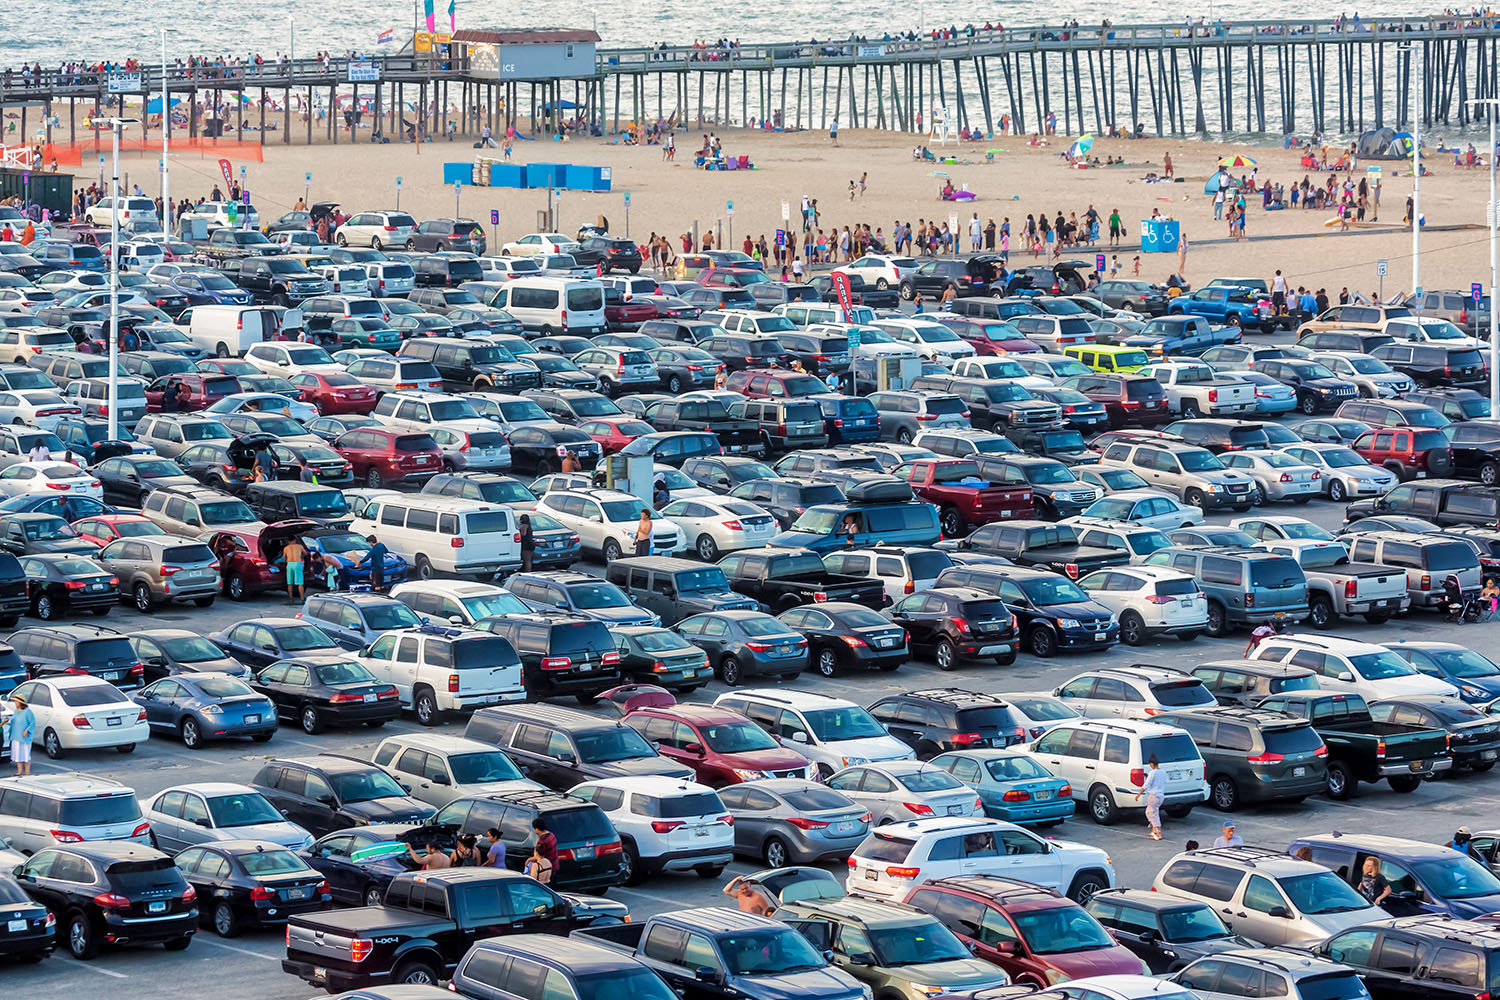 Is OC's New Parking System Cutting Nights Short?